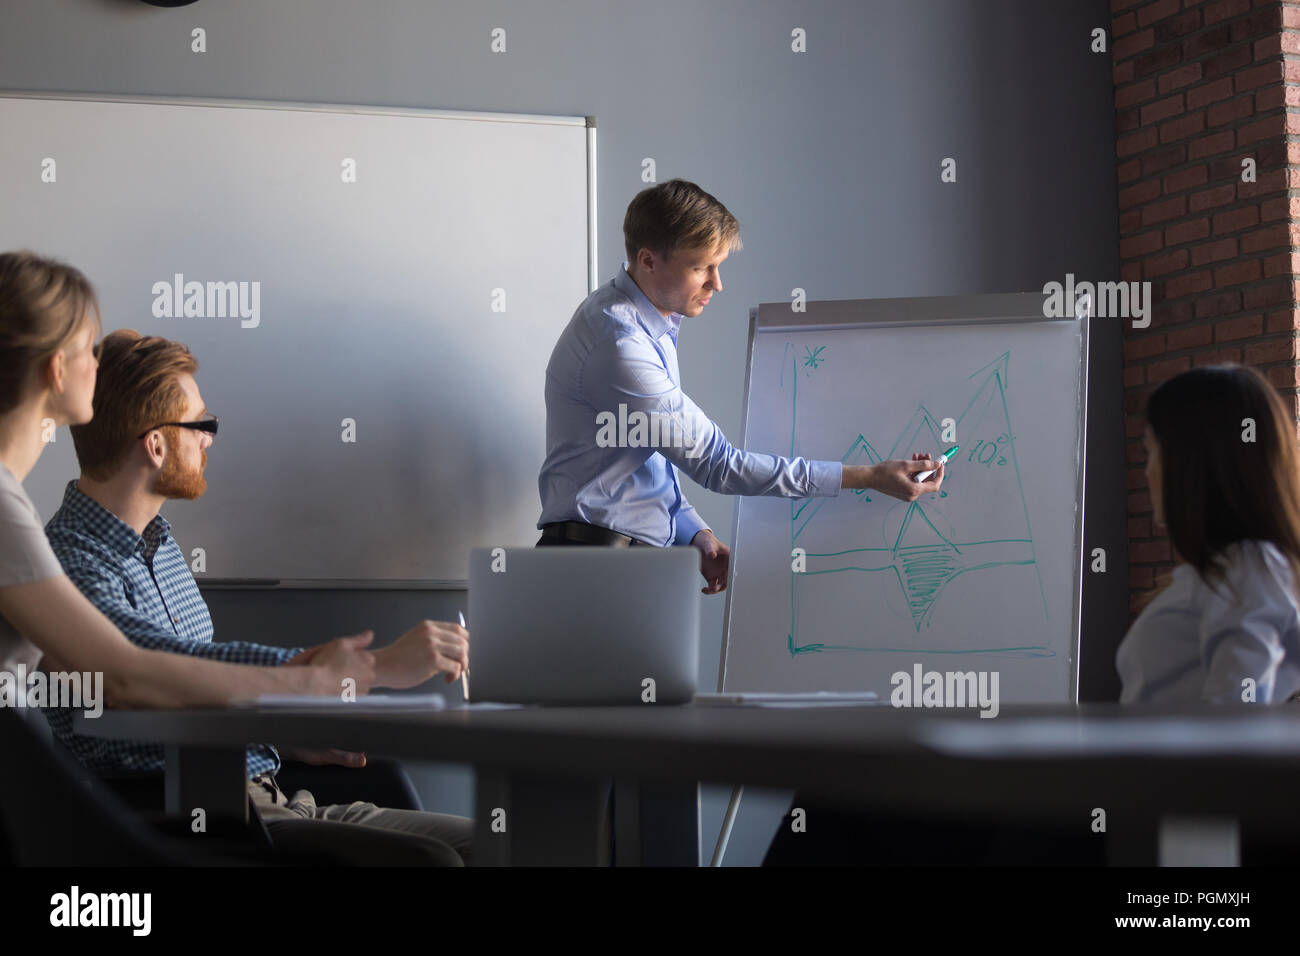 Male speaker giving flipchart presentation to colleagues - Stock Image